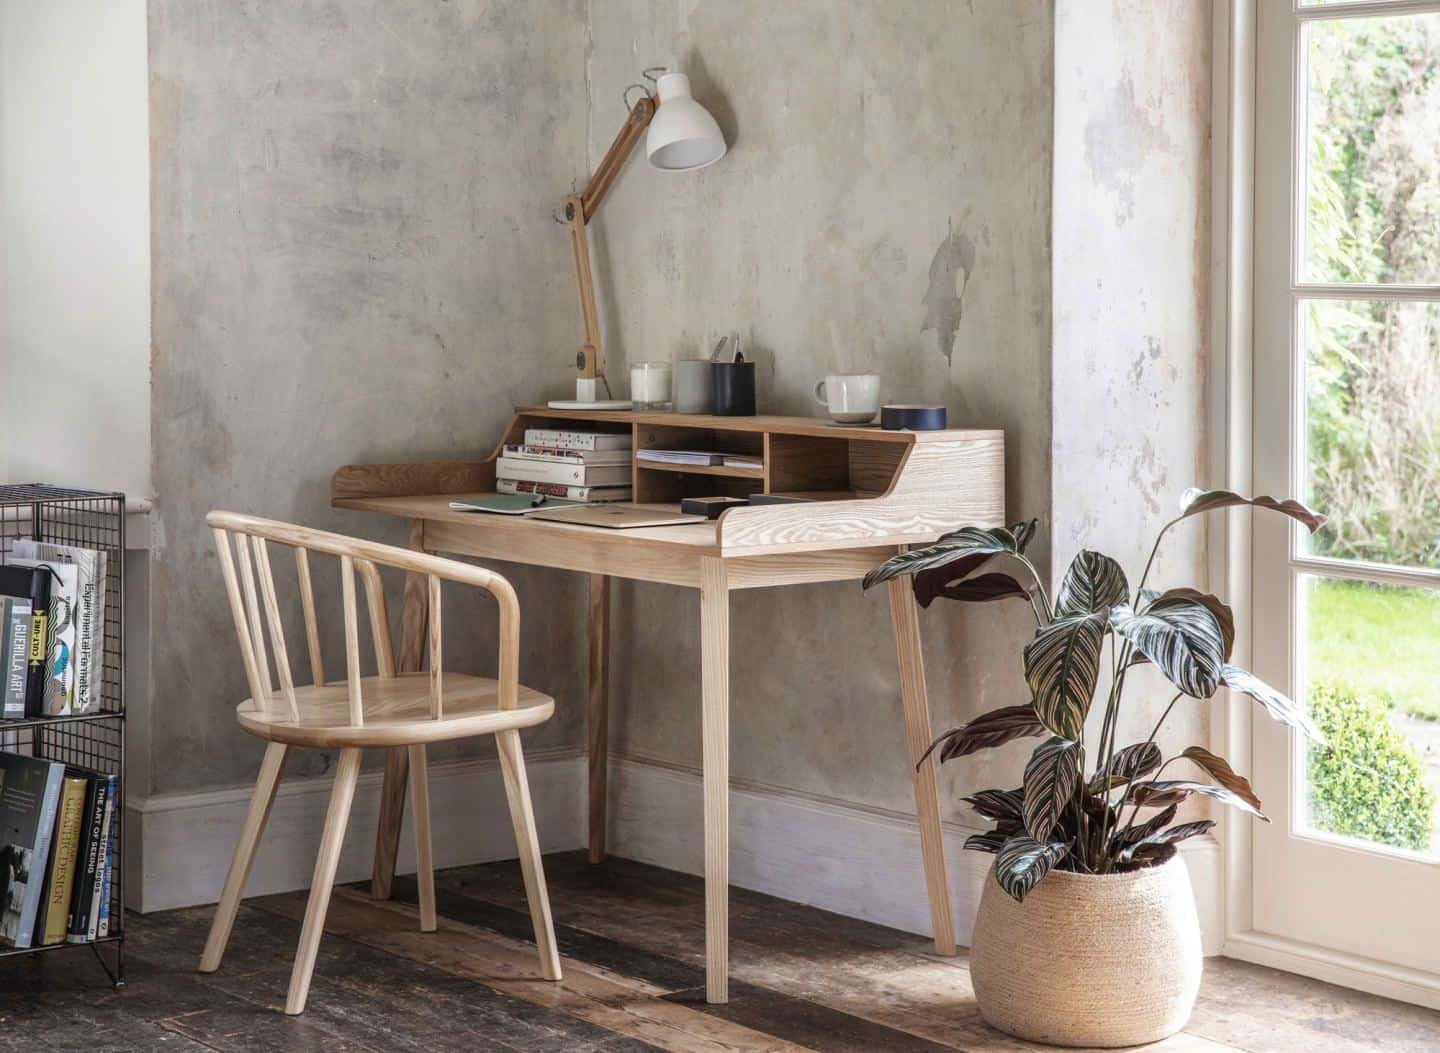 Space-saving desks. Ashwicke Desk with Storage from Garden Trading